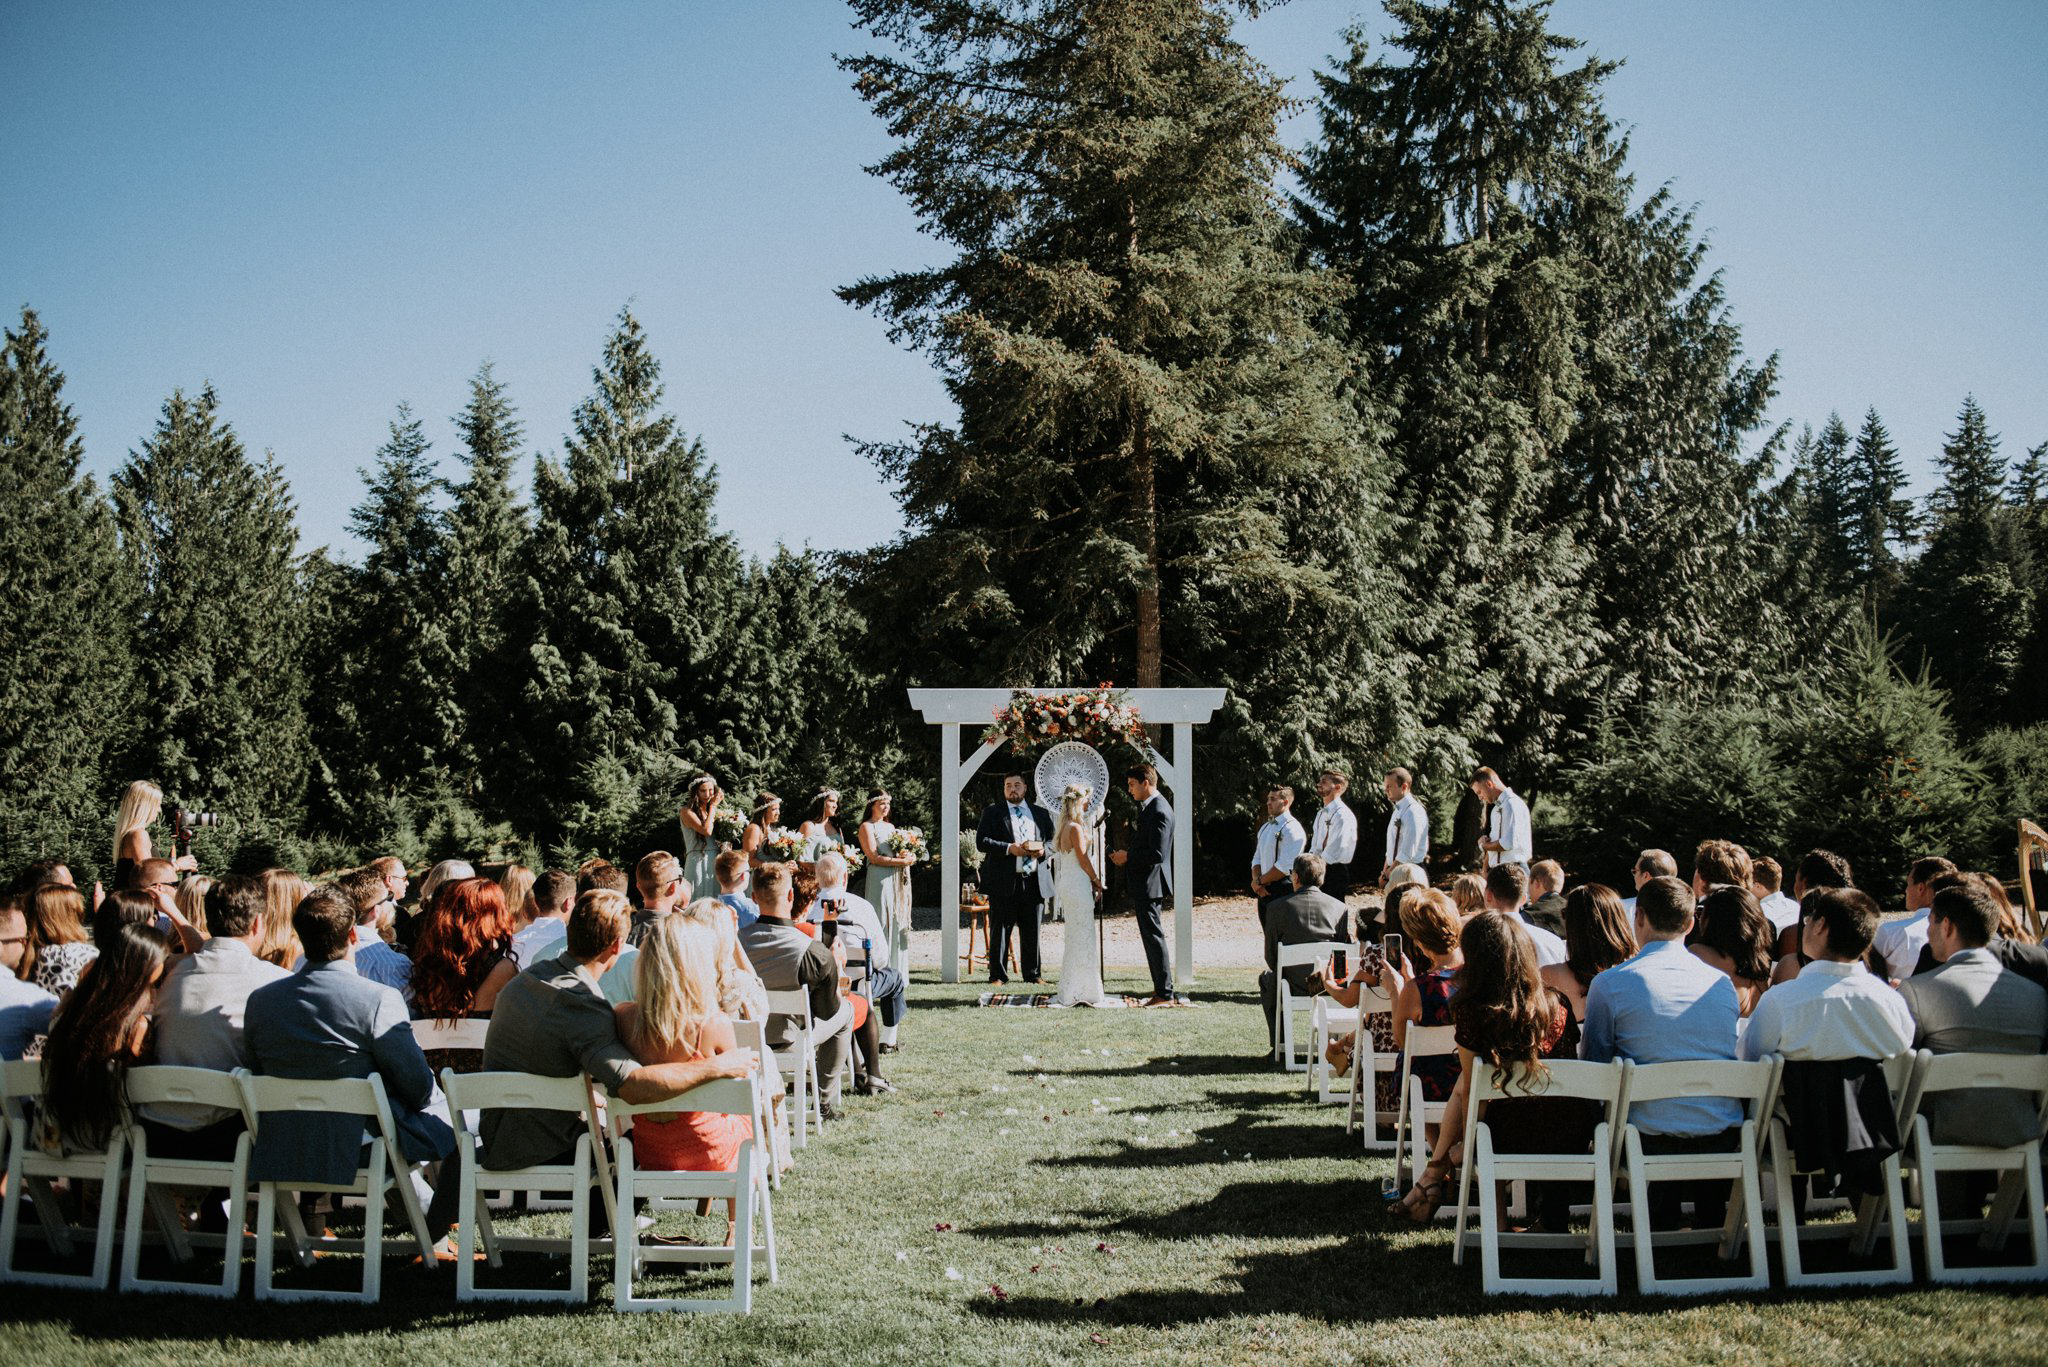 trinity-tree-farm-issaquah-washington-wedding-seattle-lifestyle-photographer-caitlyn-nikula-photography-72.jpg